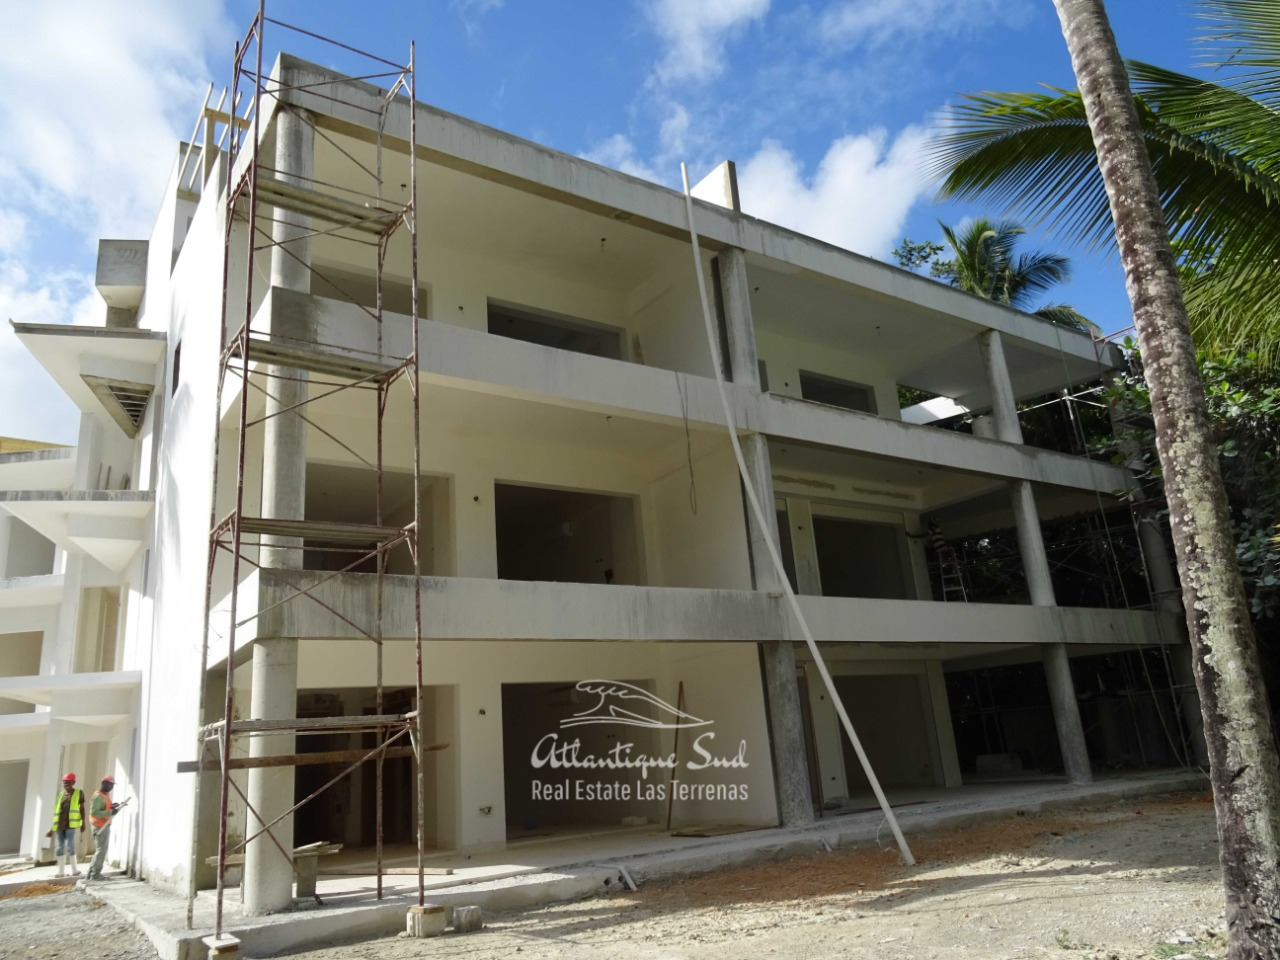 Coson bay update condos for sale las terrenas 12.jpeg